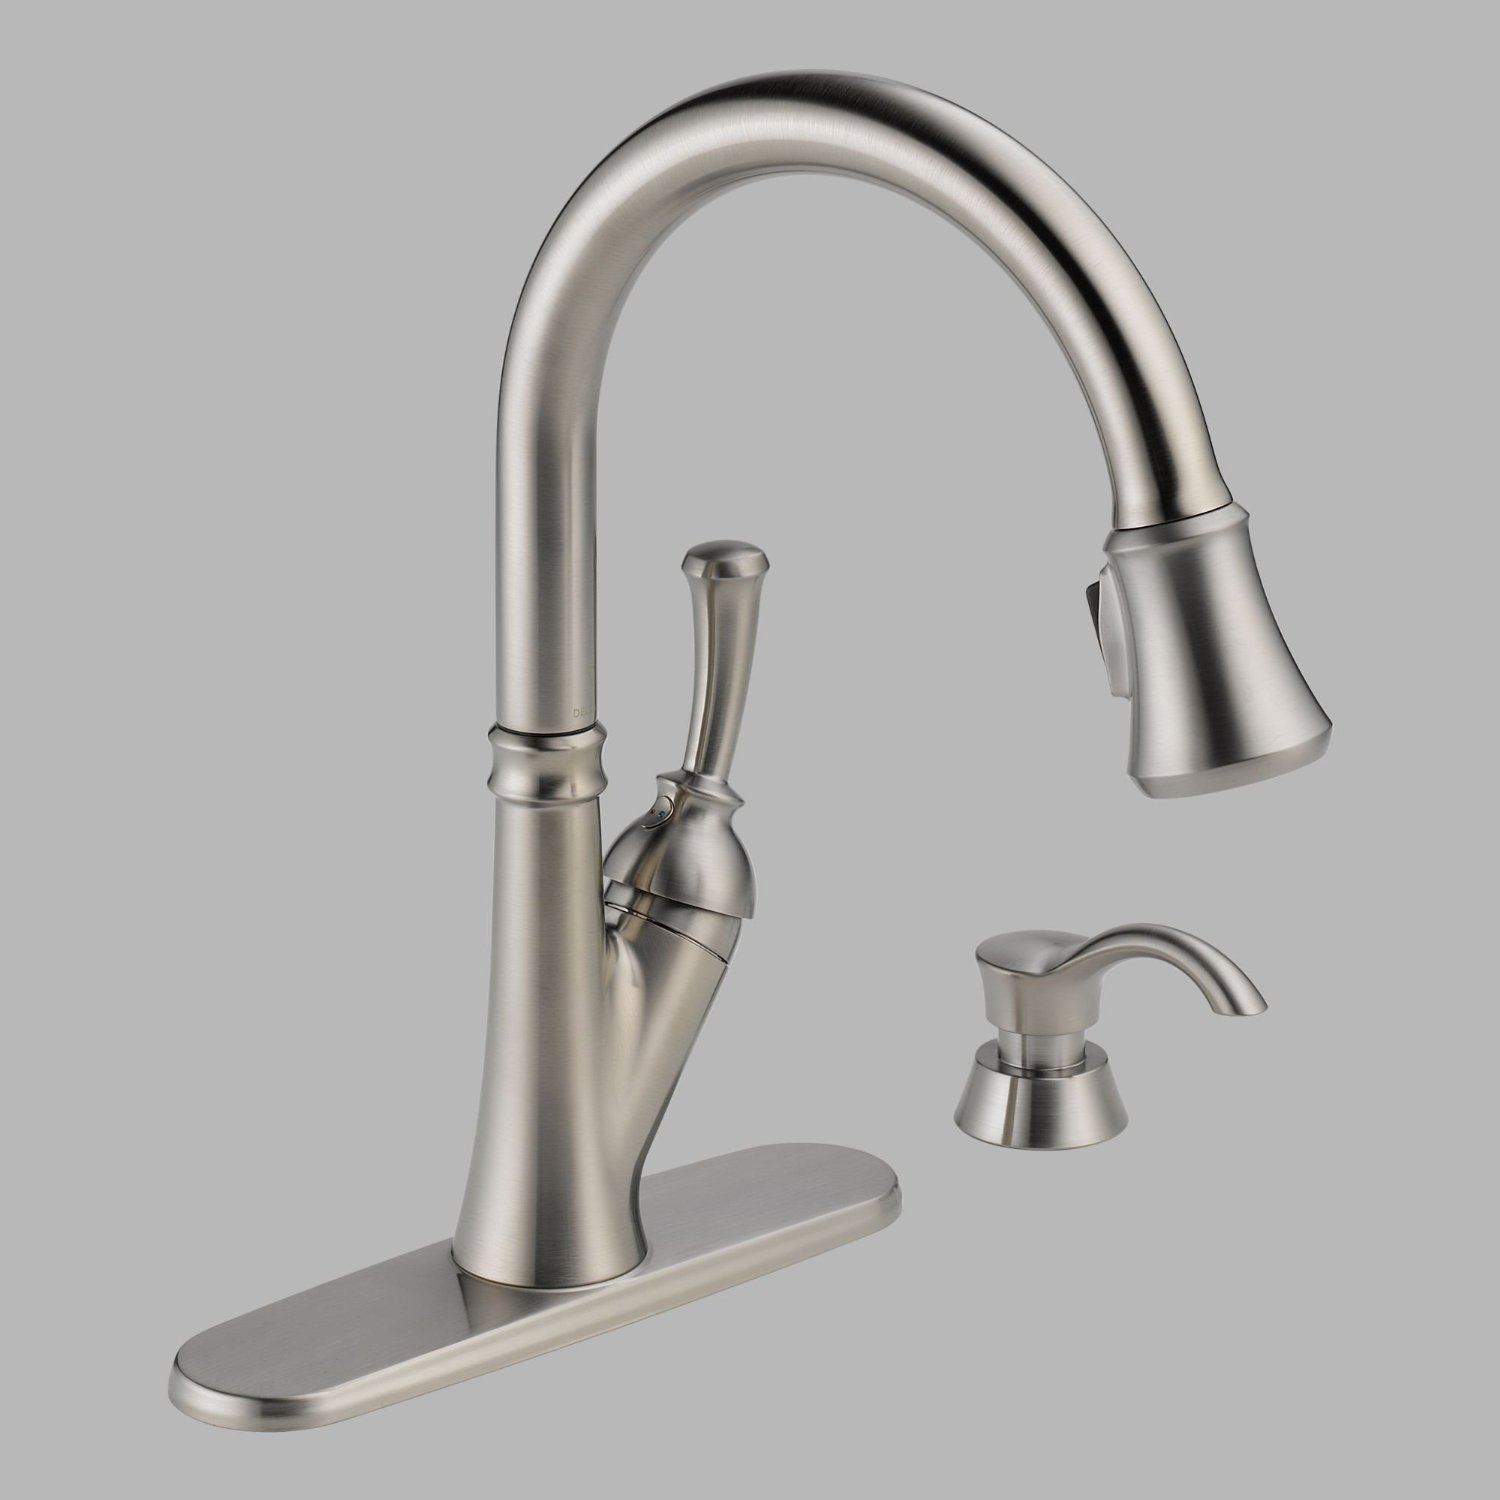 Creative Delta Cassidy Kitchen Faucet For Kitchen Faucet Ideas With Delta  Single Handle Kitchen Faucet With